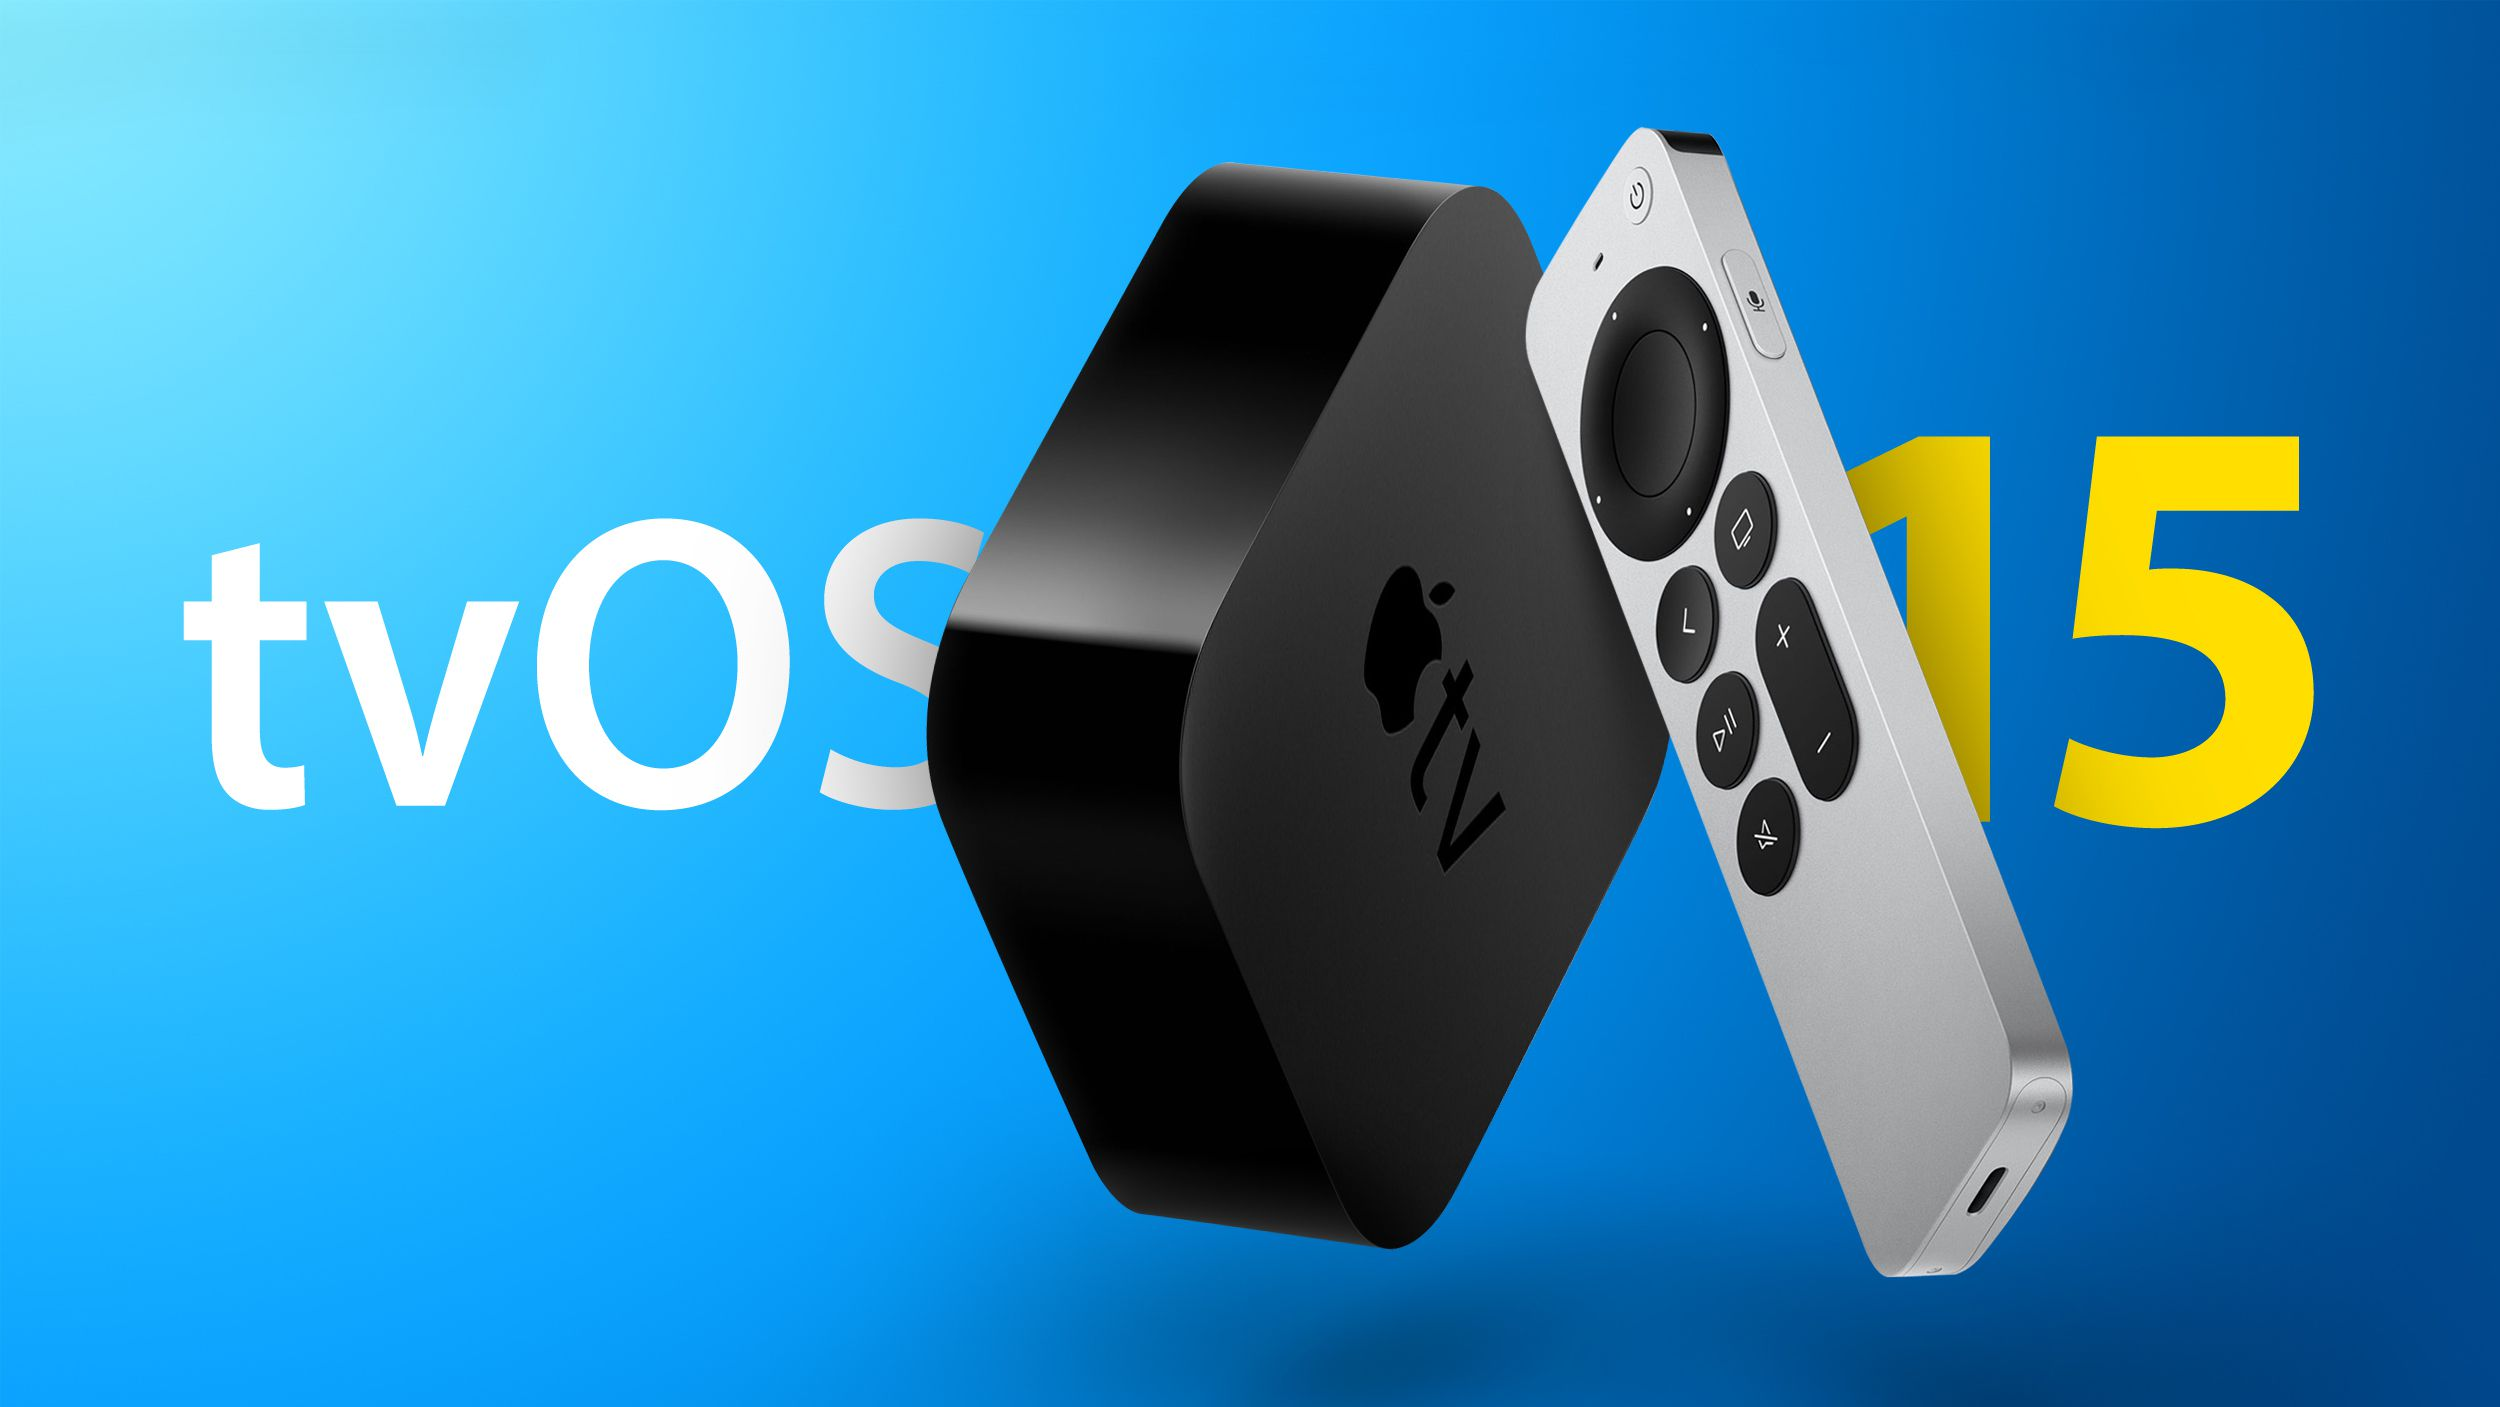 Apple Seeds Fourth Beta of tvOS 15 to Developers